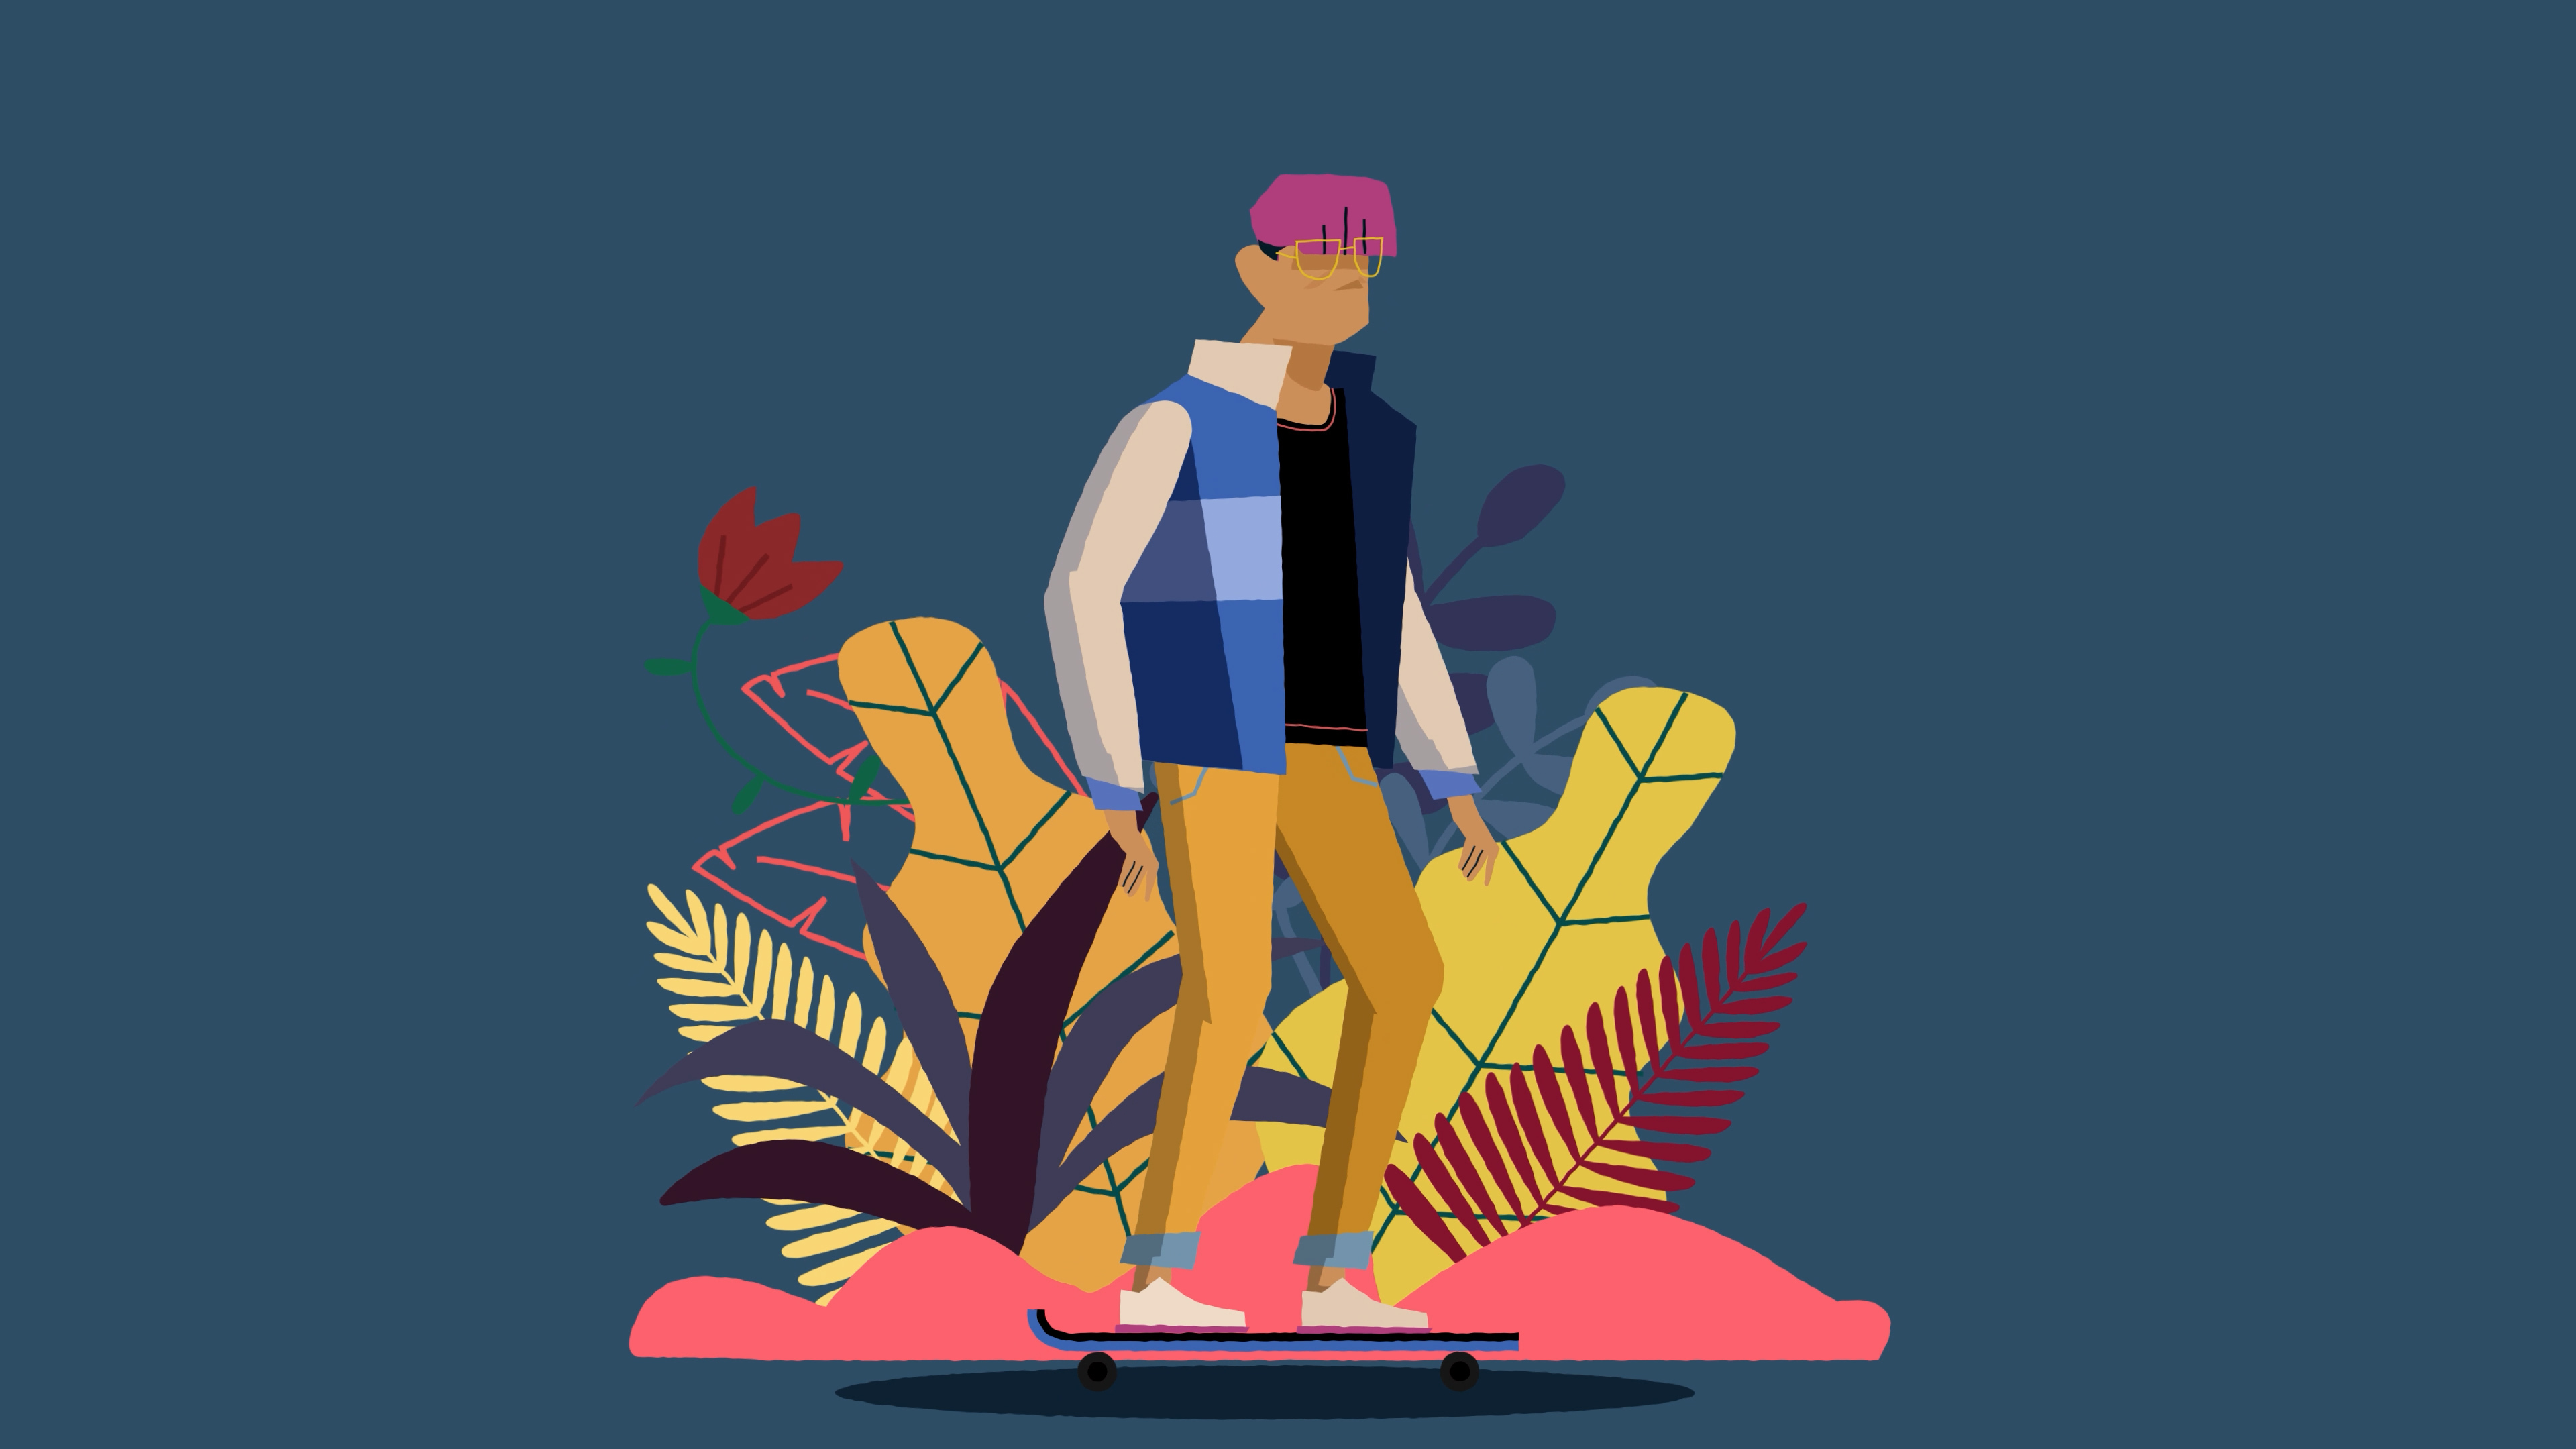 Drawing of a teenager standing on a skateboard